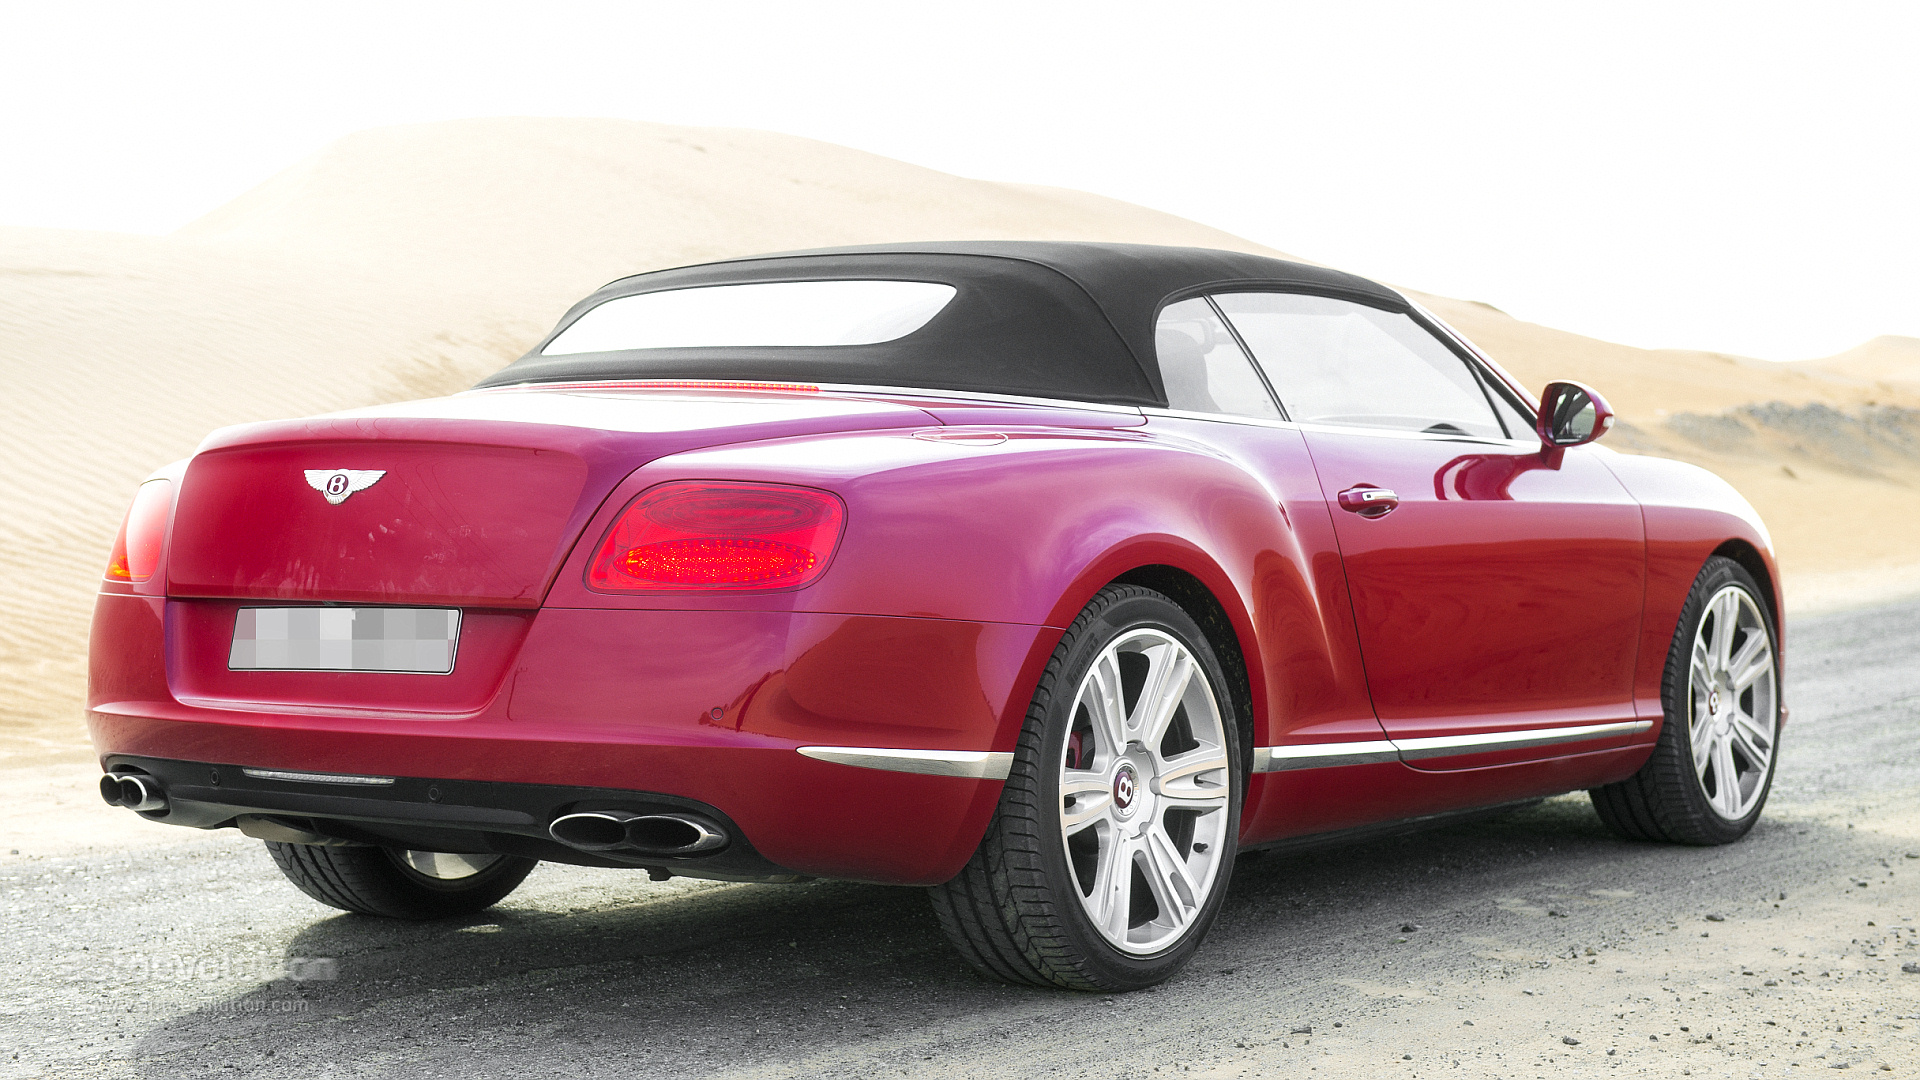 Bentley continental gt w12 review autoevolution - Photo Gallery 53